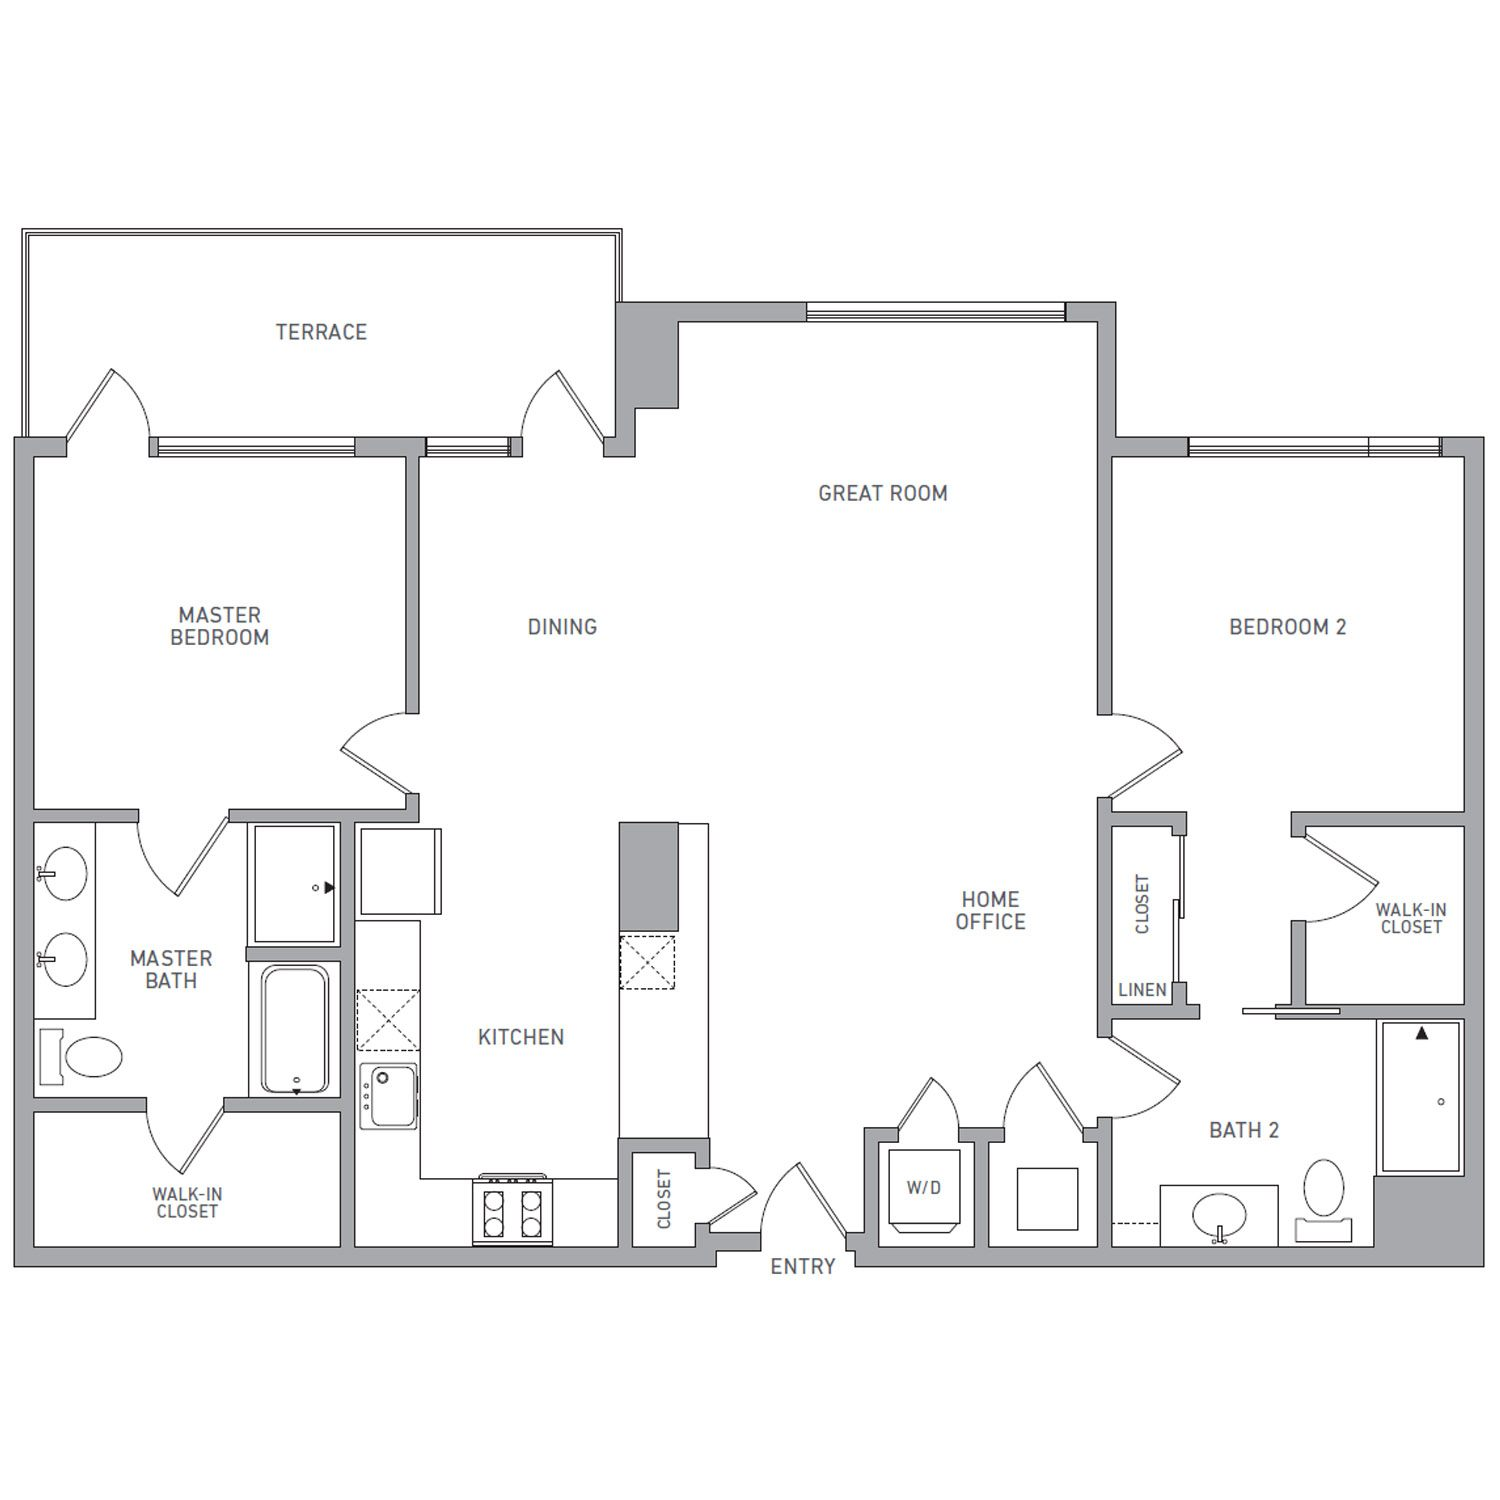 P H 205 floor plan diagram. Penthouse apartment with two bedrooms, three bathrooms, an open kitchen dining and living area, a terrace, and a washer dryer.